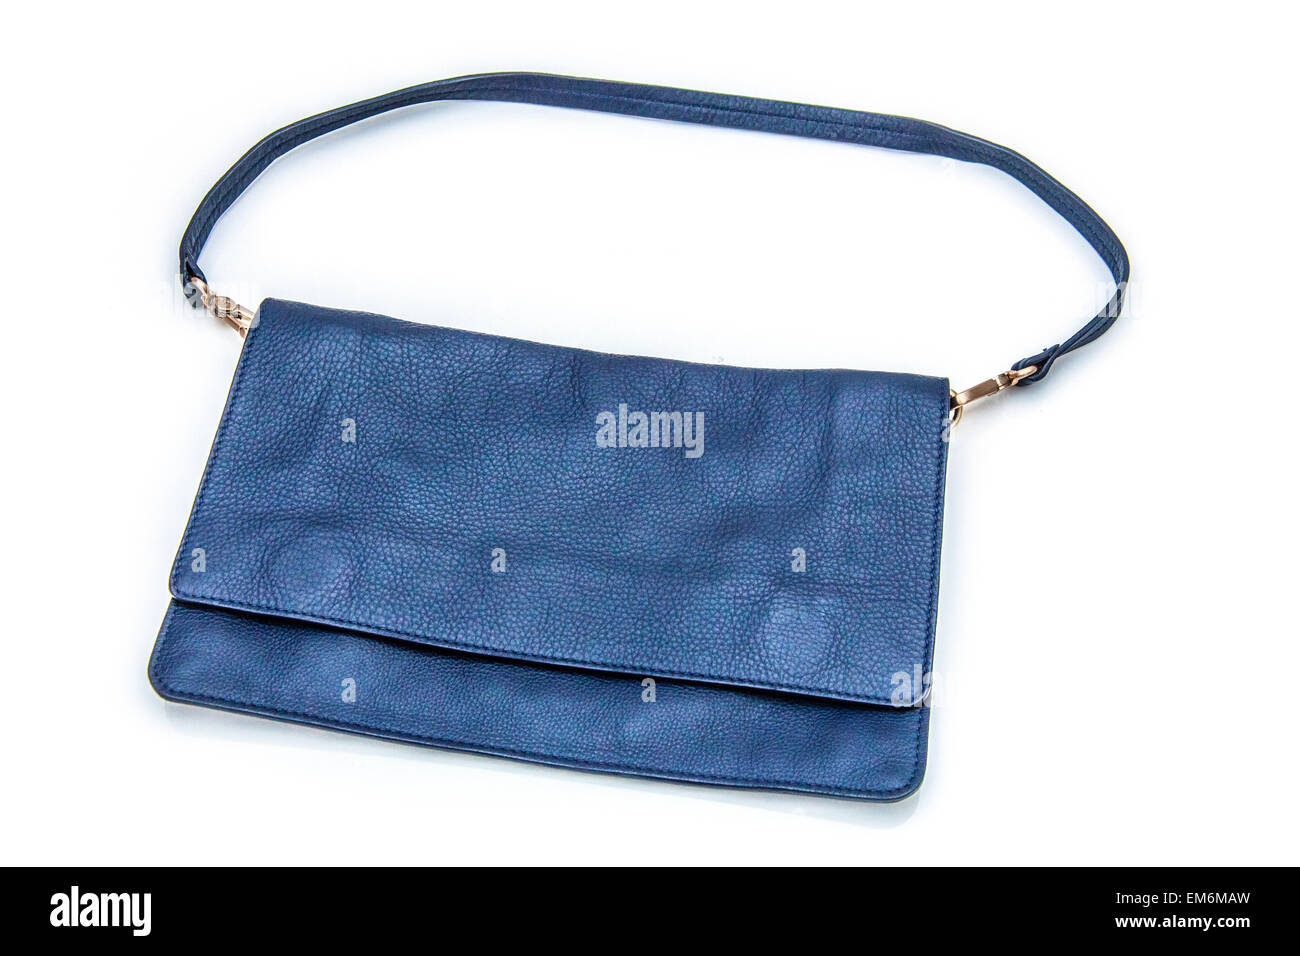 Navy blue leather Boden clutch bag isolated on a white studio background. - Stock Image